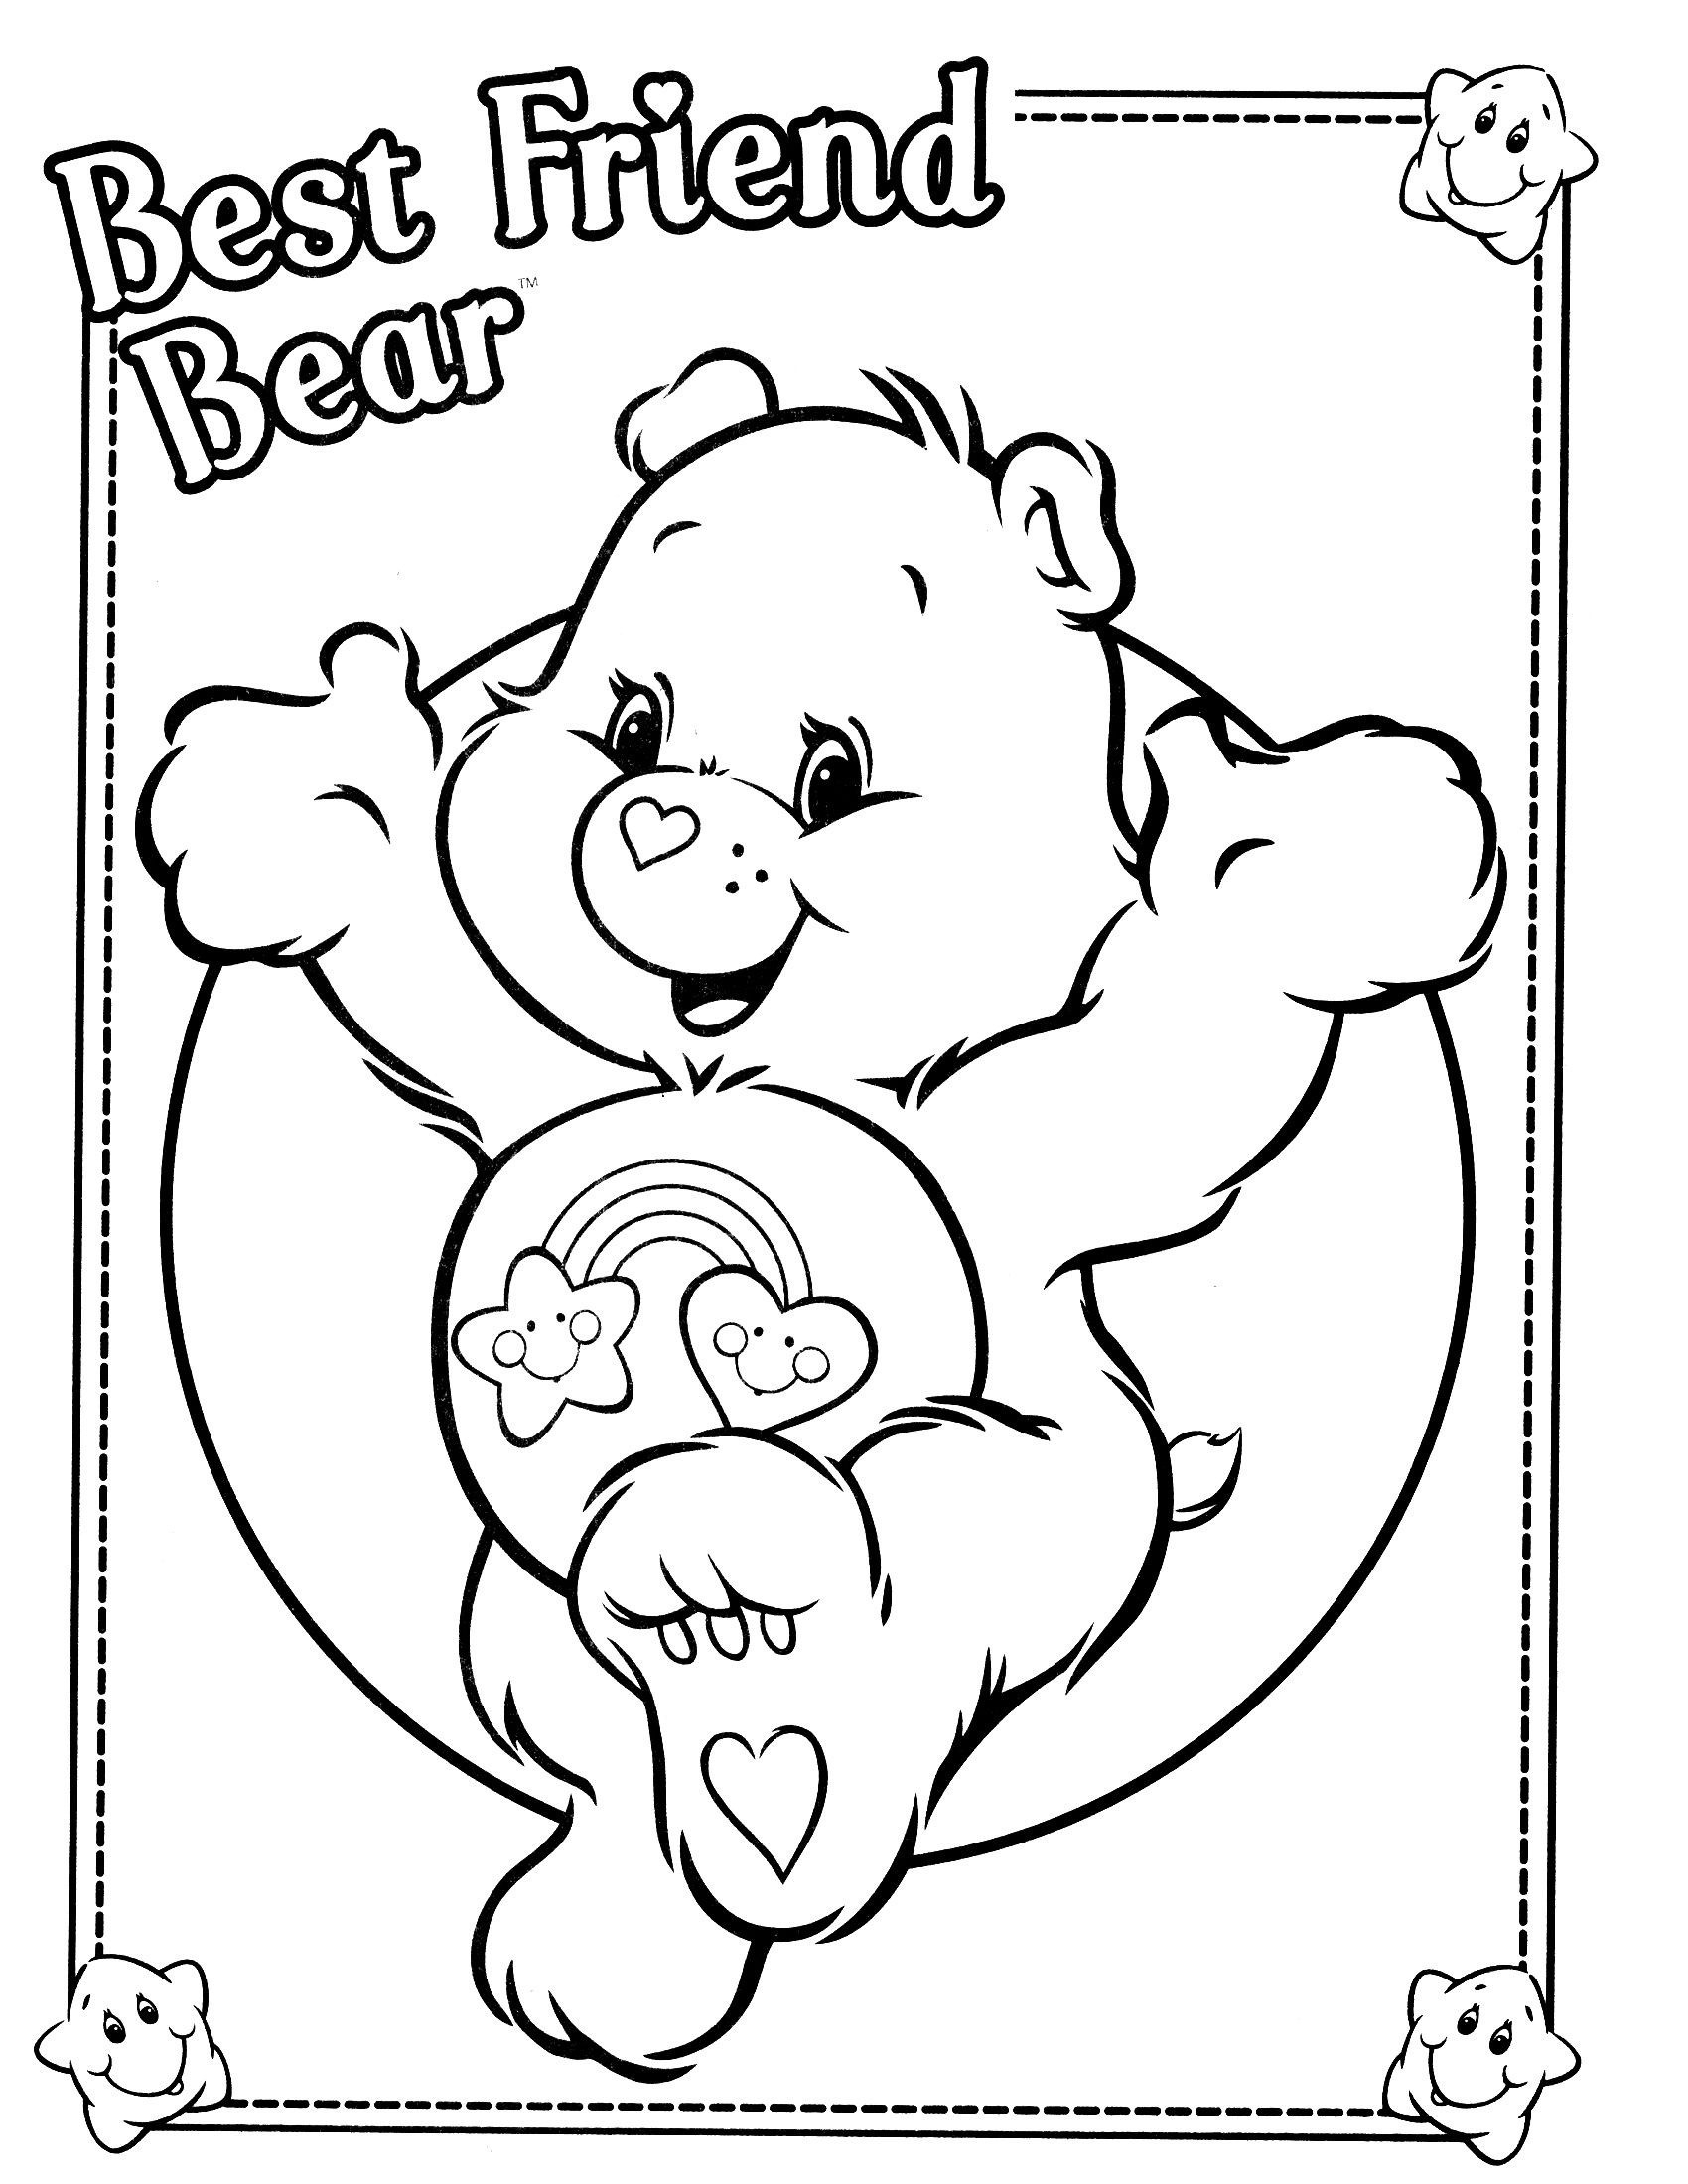 Care Bears 51 Coloring Page - Free The Care Bears Coloring Pages ... | 2200x1700